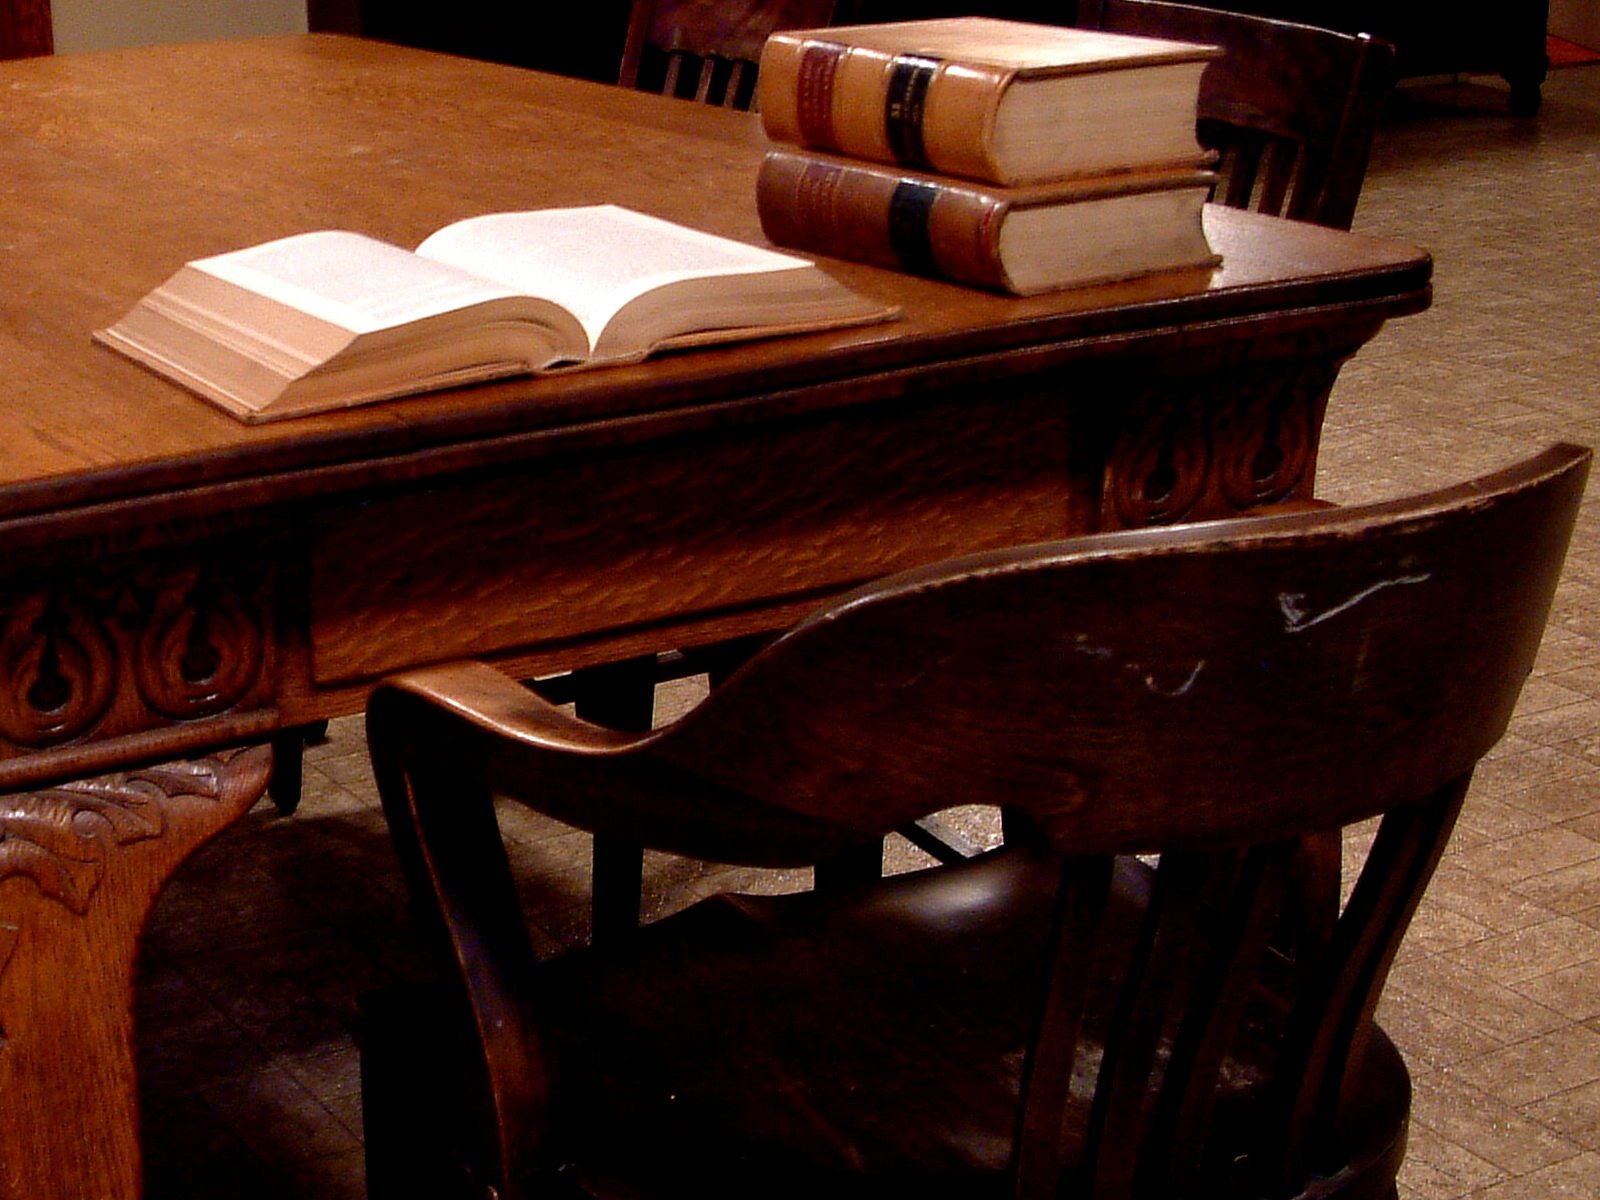 Legal books on library table